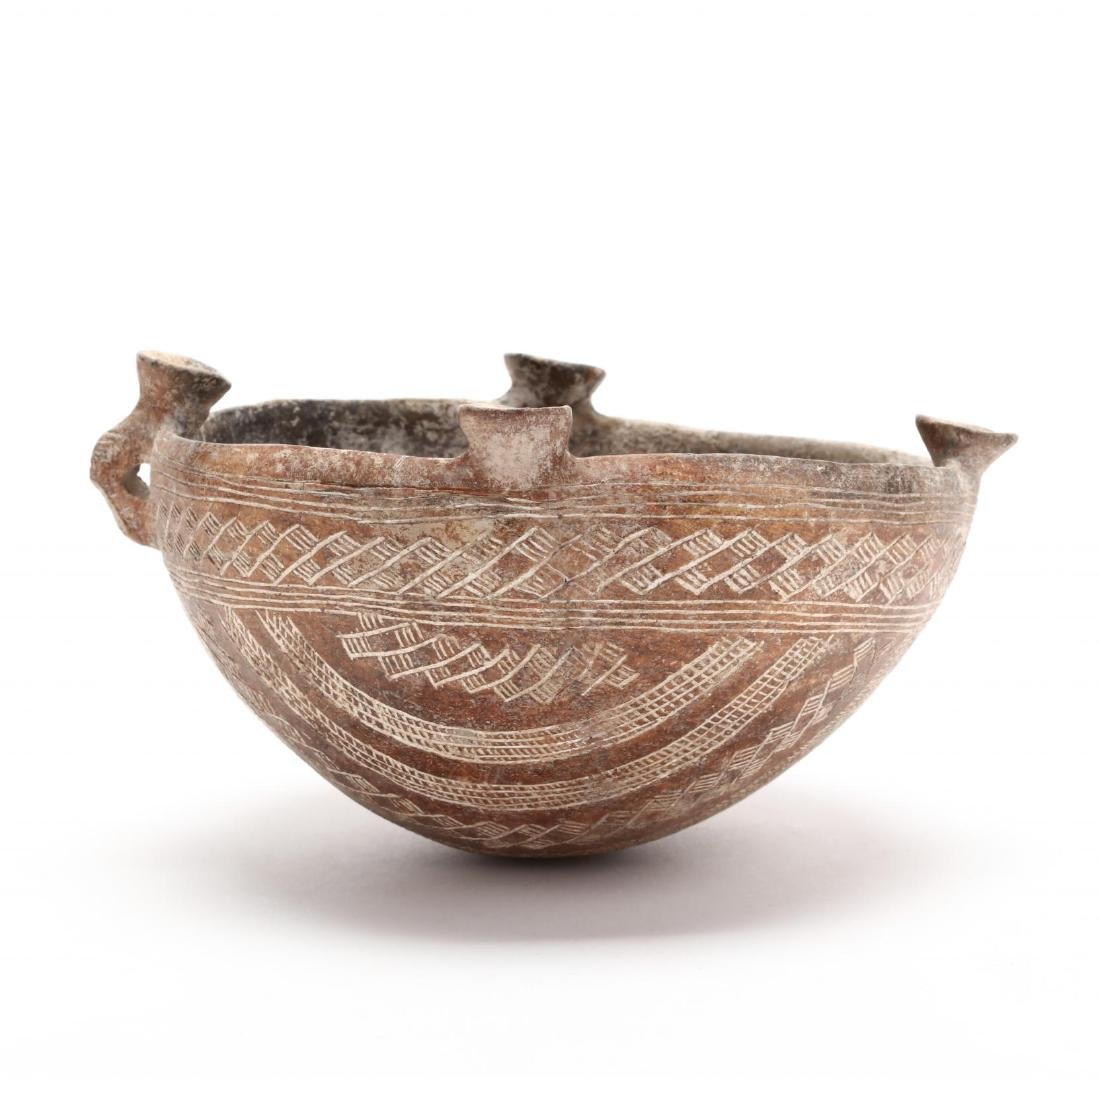 Cypriot Early Bronze Age Polished Bowl